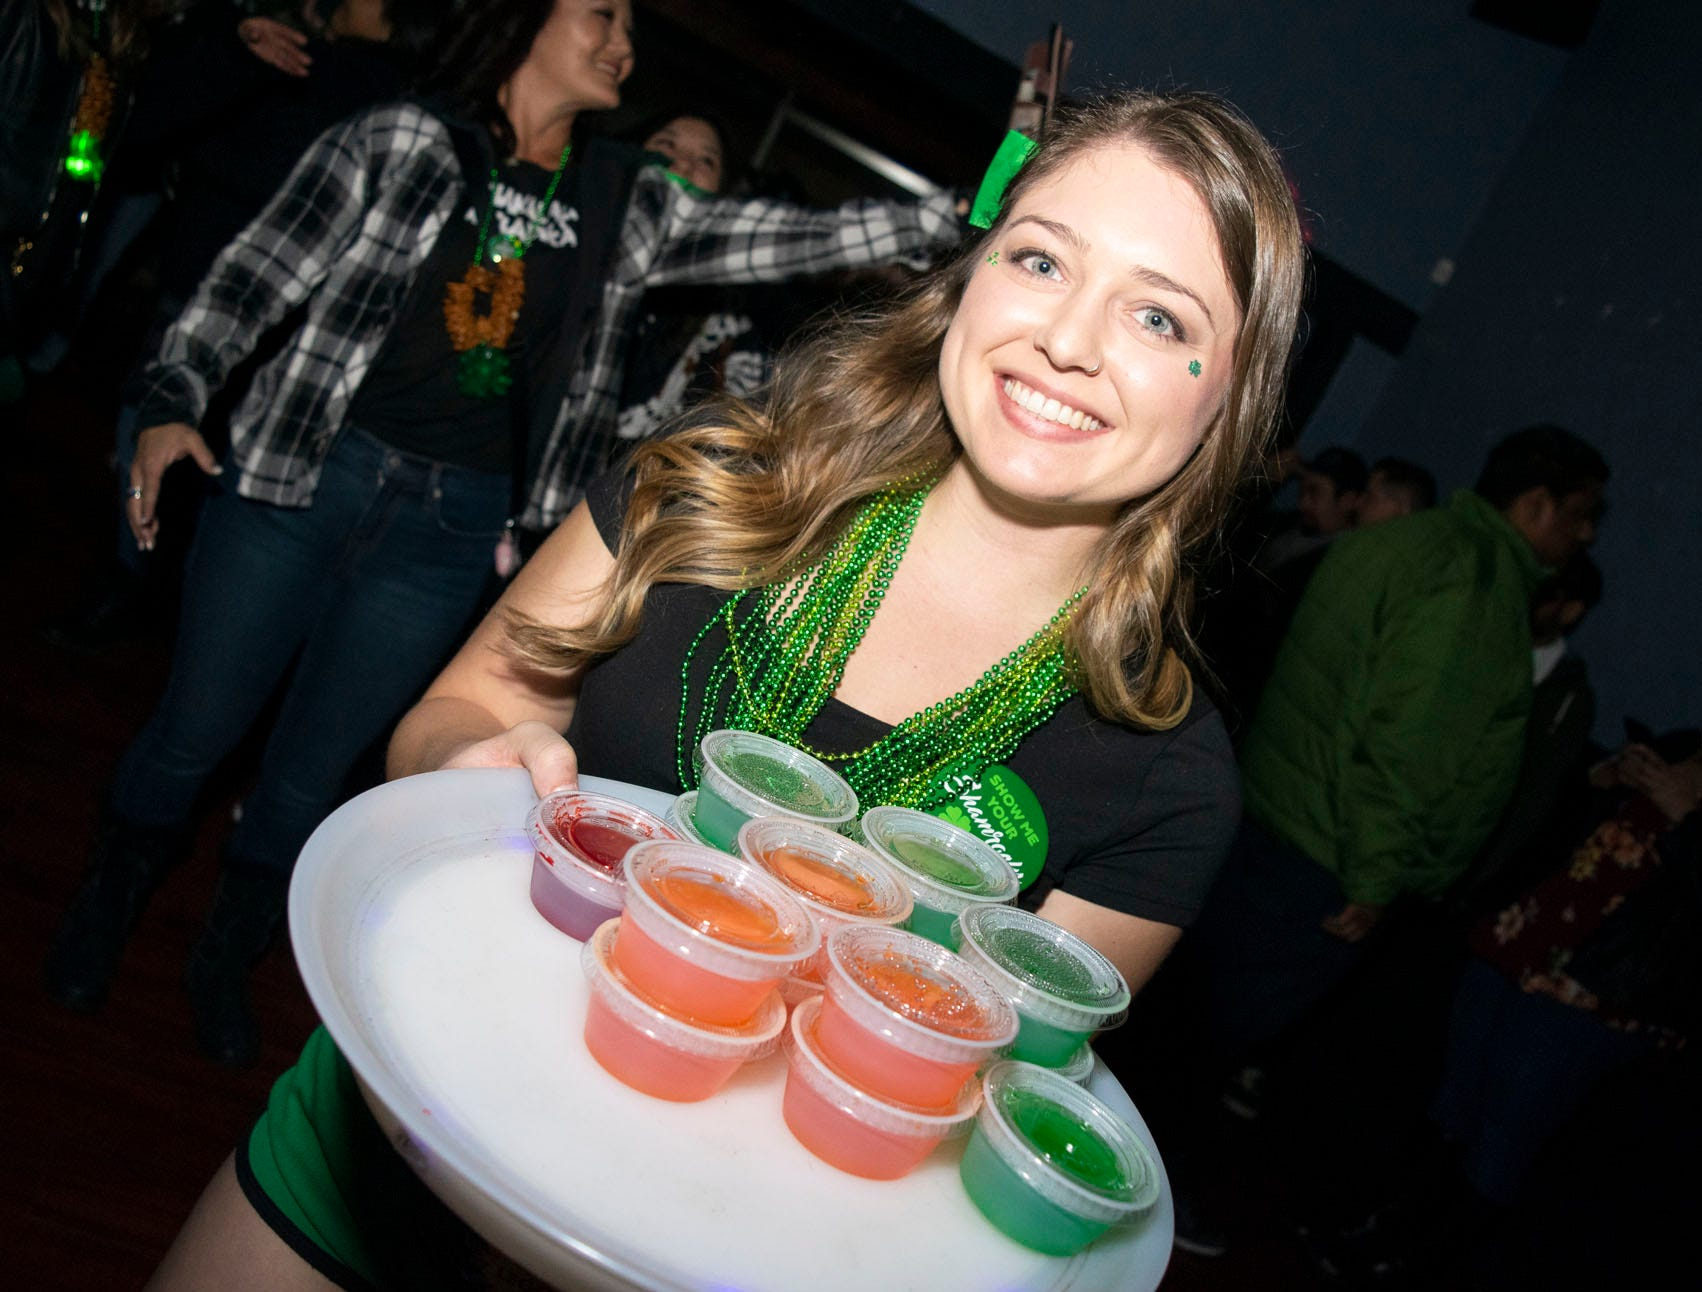 Mikayla Rankin serves jello shots at the Library Bar during the 2019 Leprechaun Crawl on Saturday, March 16, 2019. Reno, Nev.